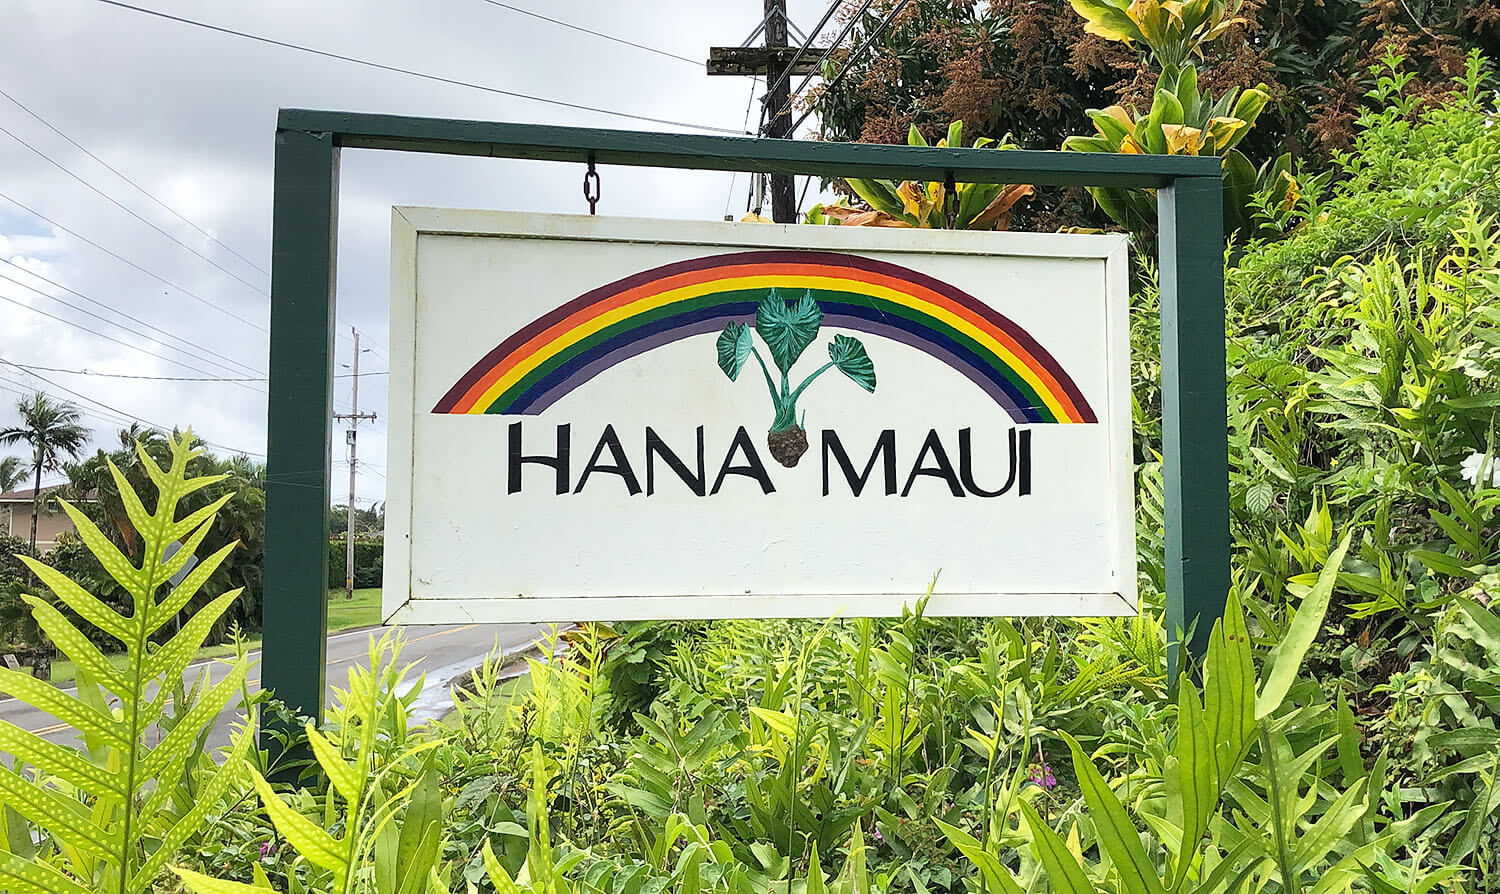 Tips for Taking The Road To Hana Maui Hawaii Travel Guide Hana Town